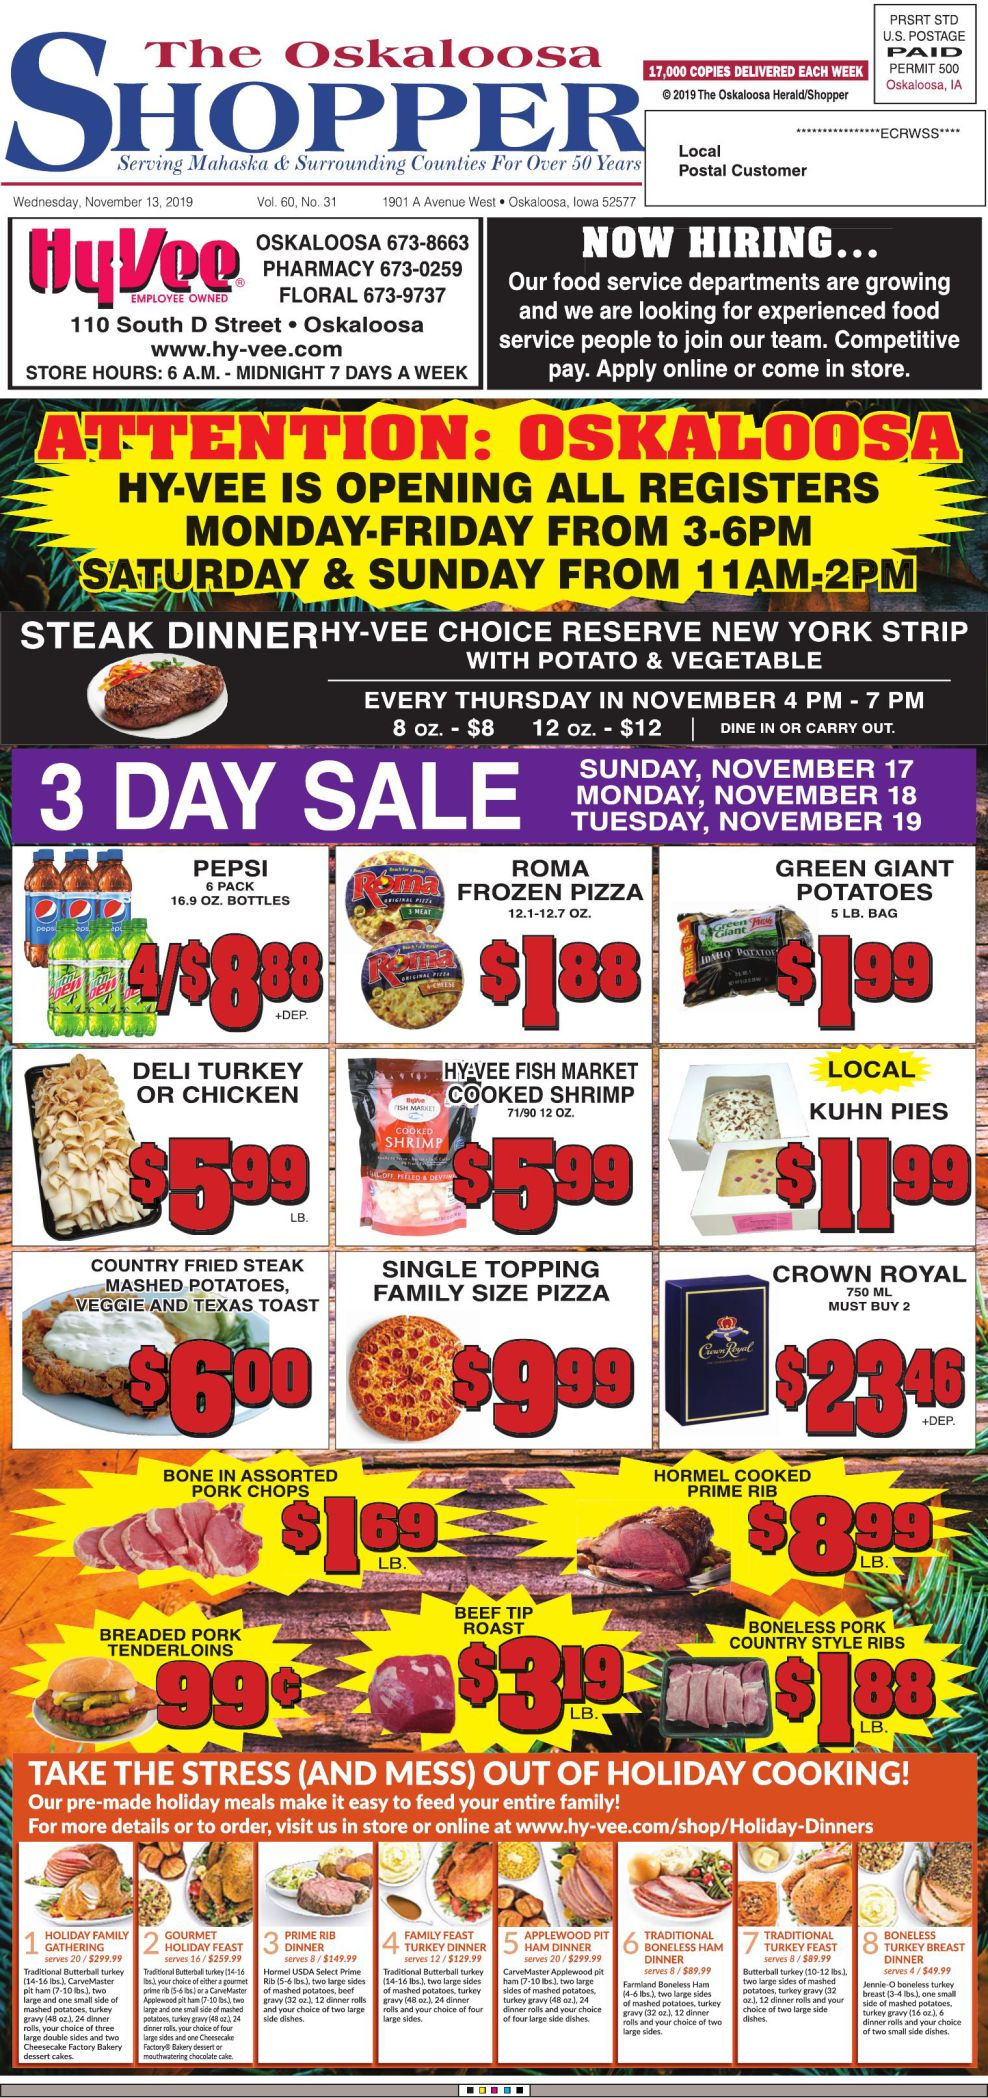 Oskaloosa Shopper week of 11/13/19